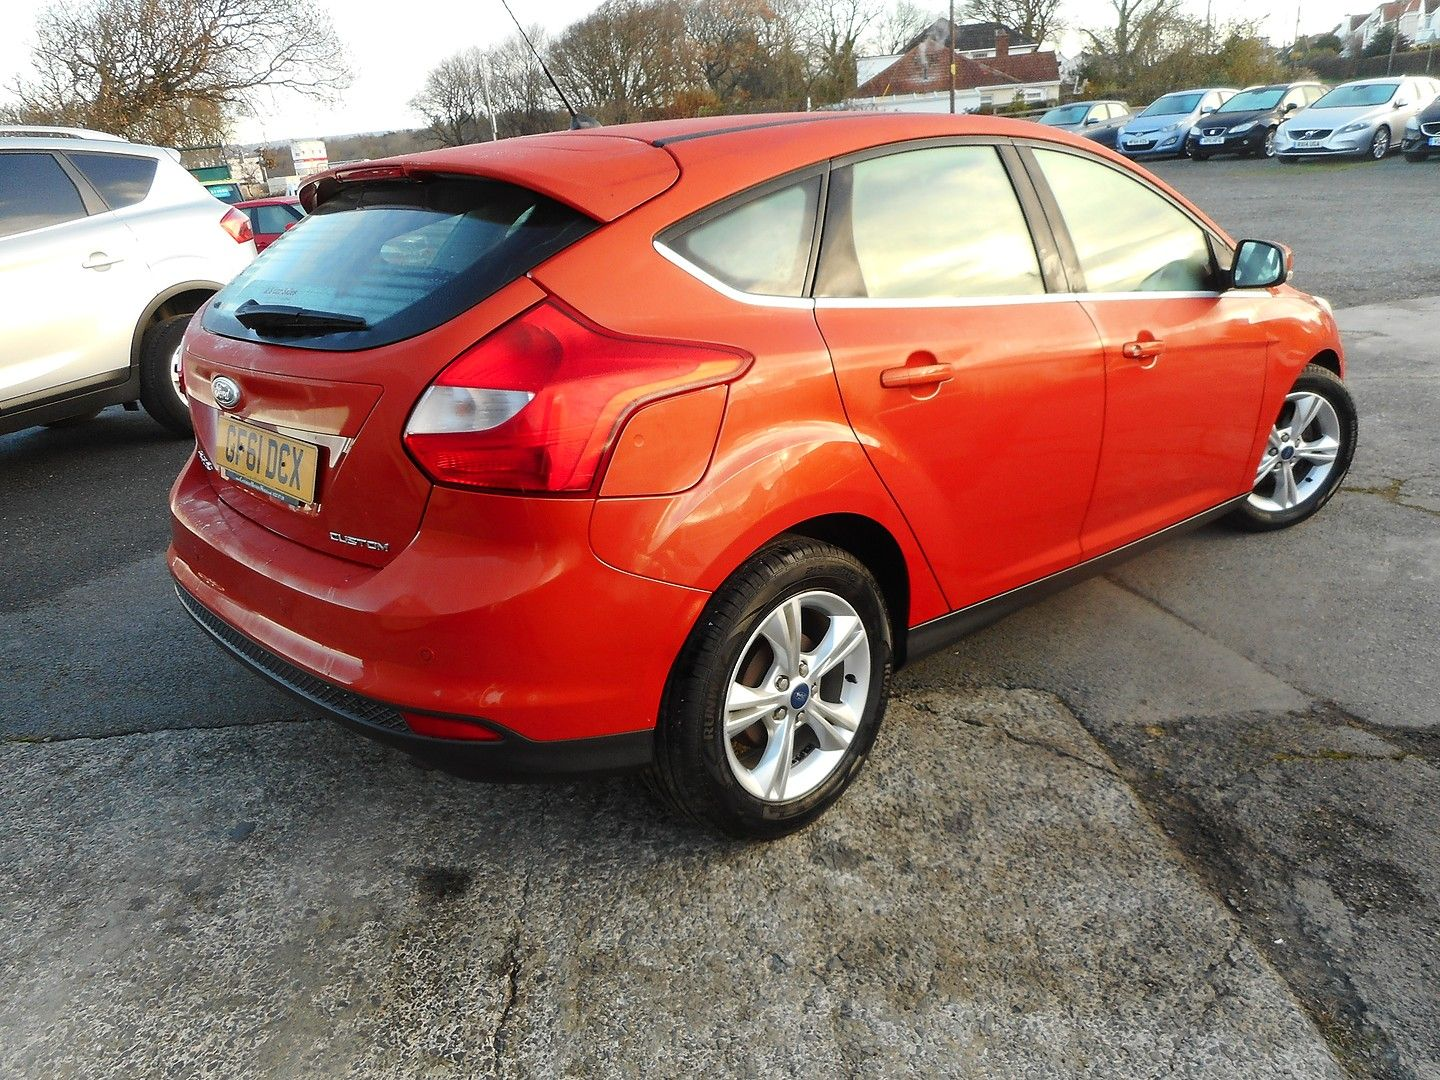 FORD Focus 1.6 Zetec Auto (2011) - Picture 3